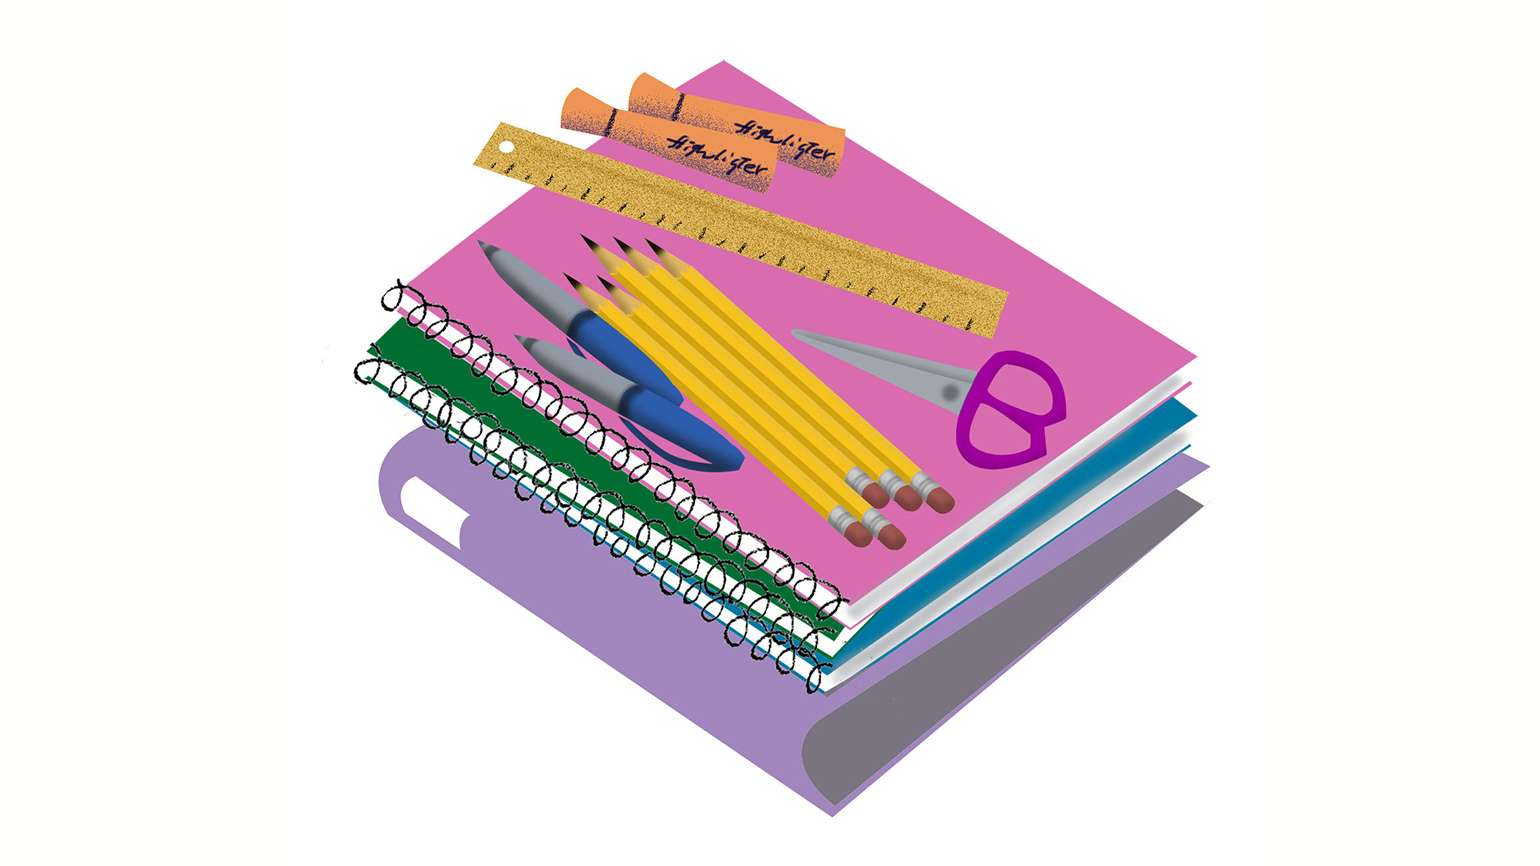 An artist's rendering of a stack of school supplies